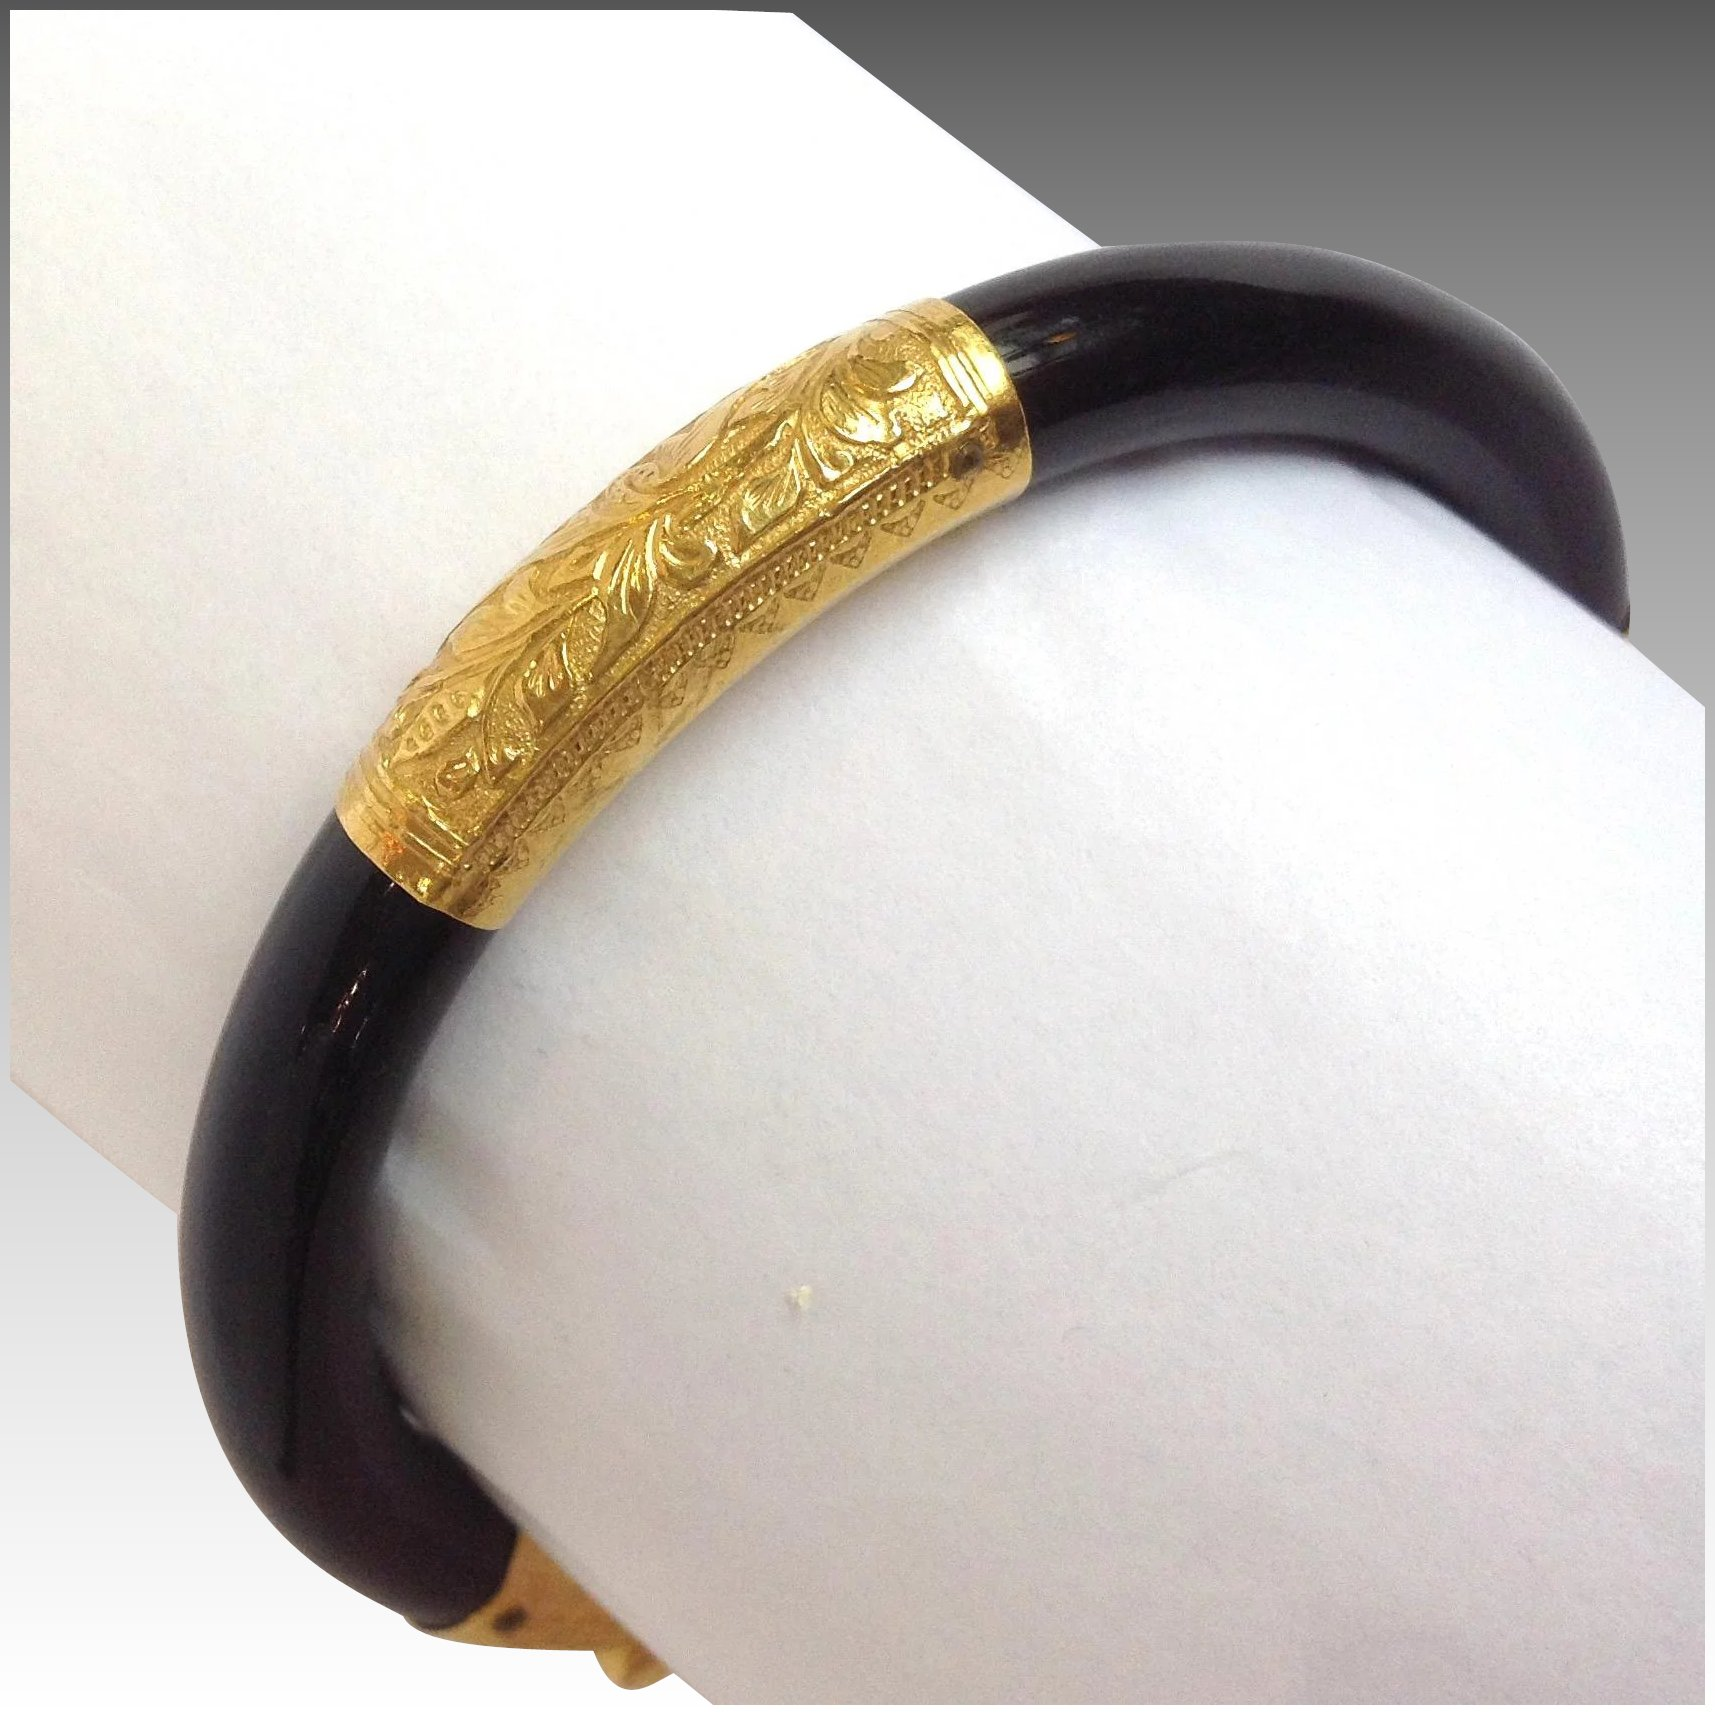 designs karat wonder in buy bluestone bangles india online the bangle pics bracelets twirled gold jewellery